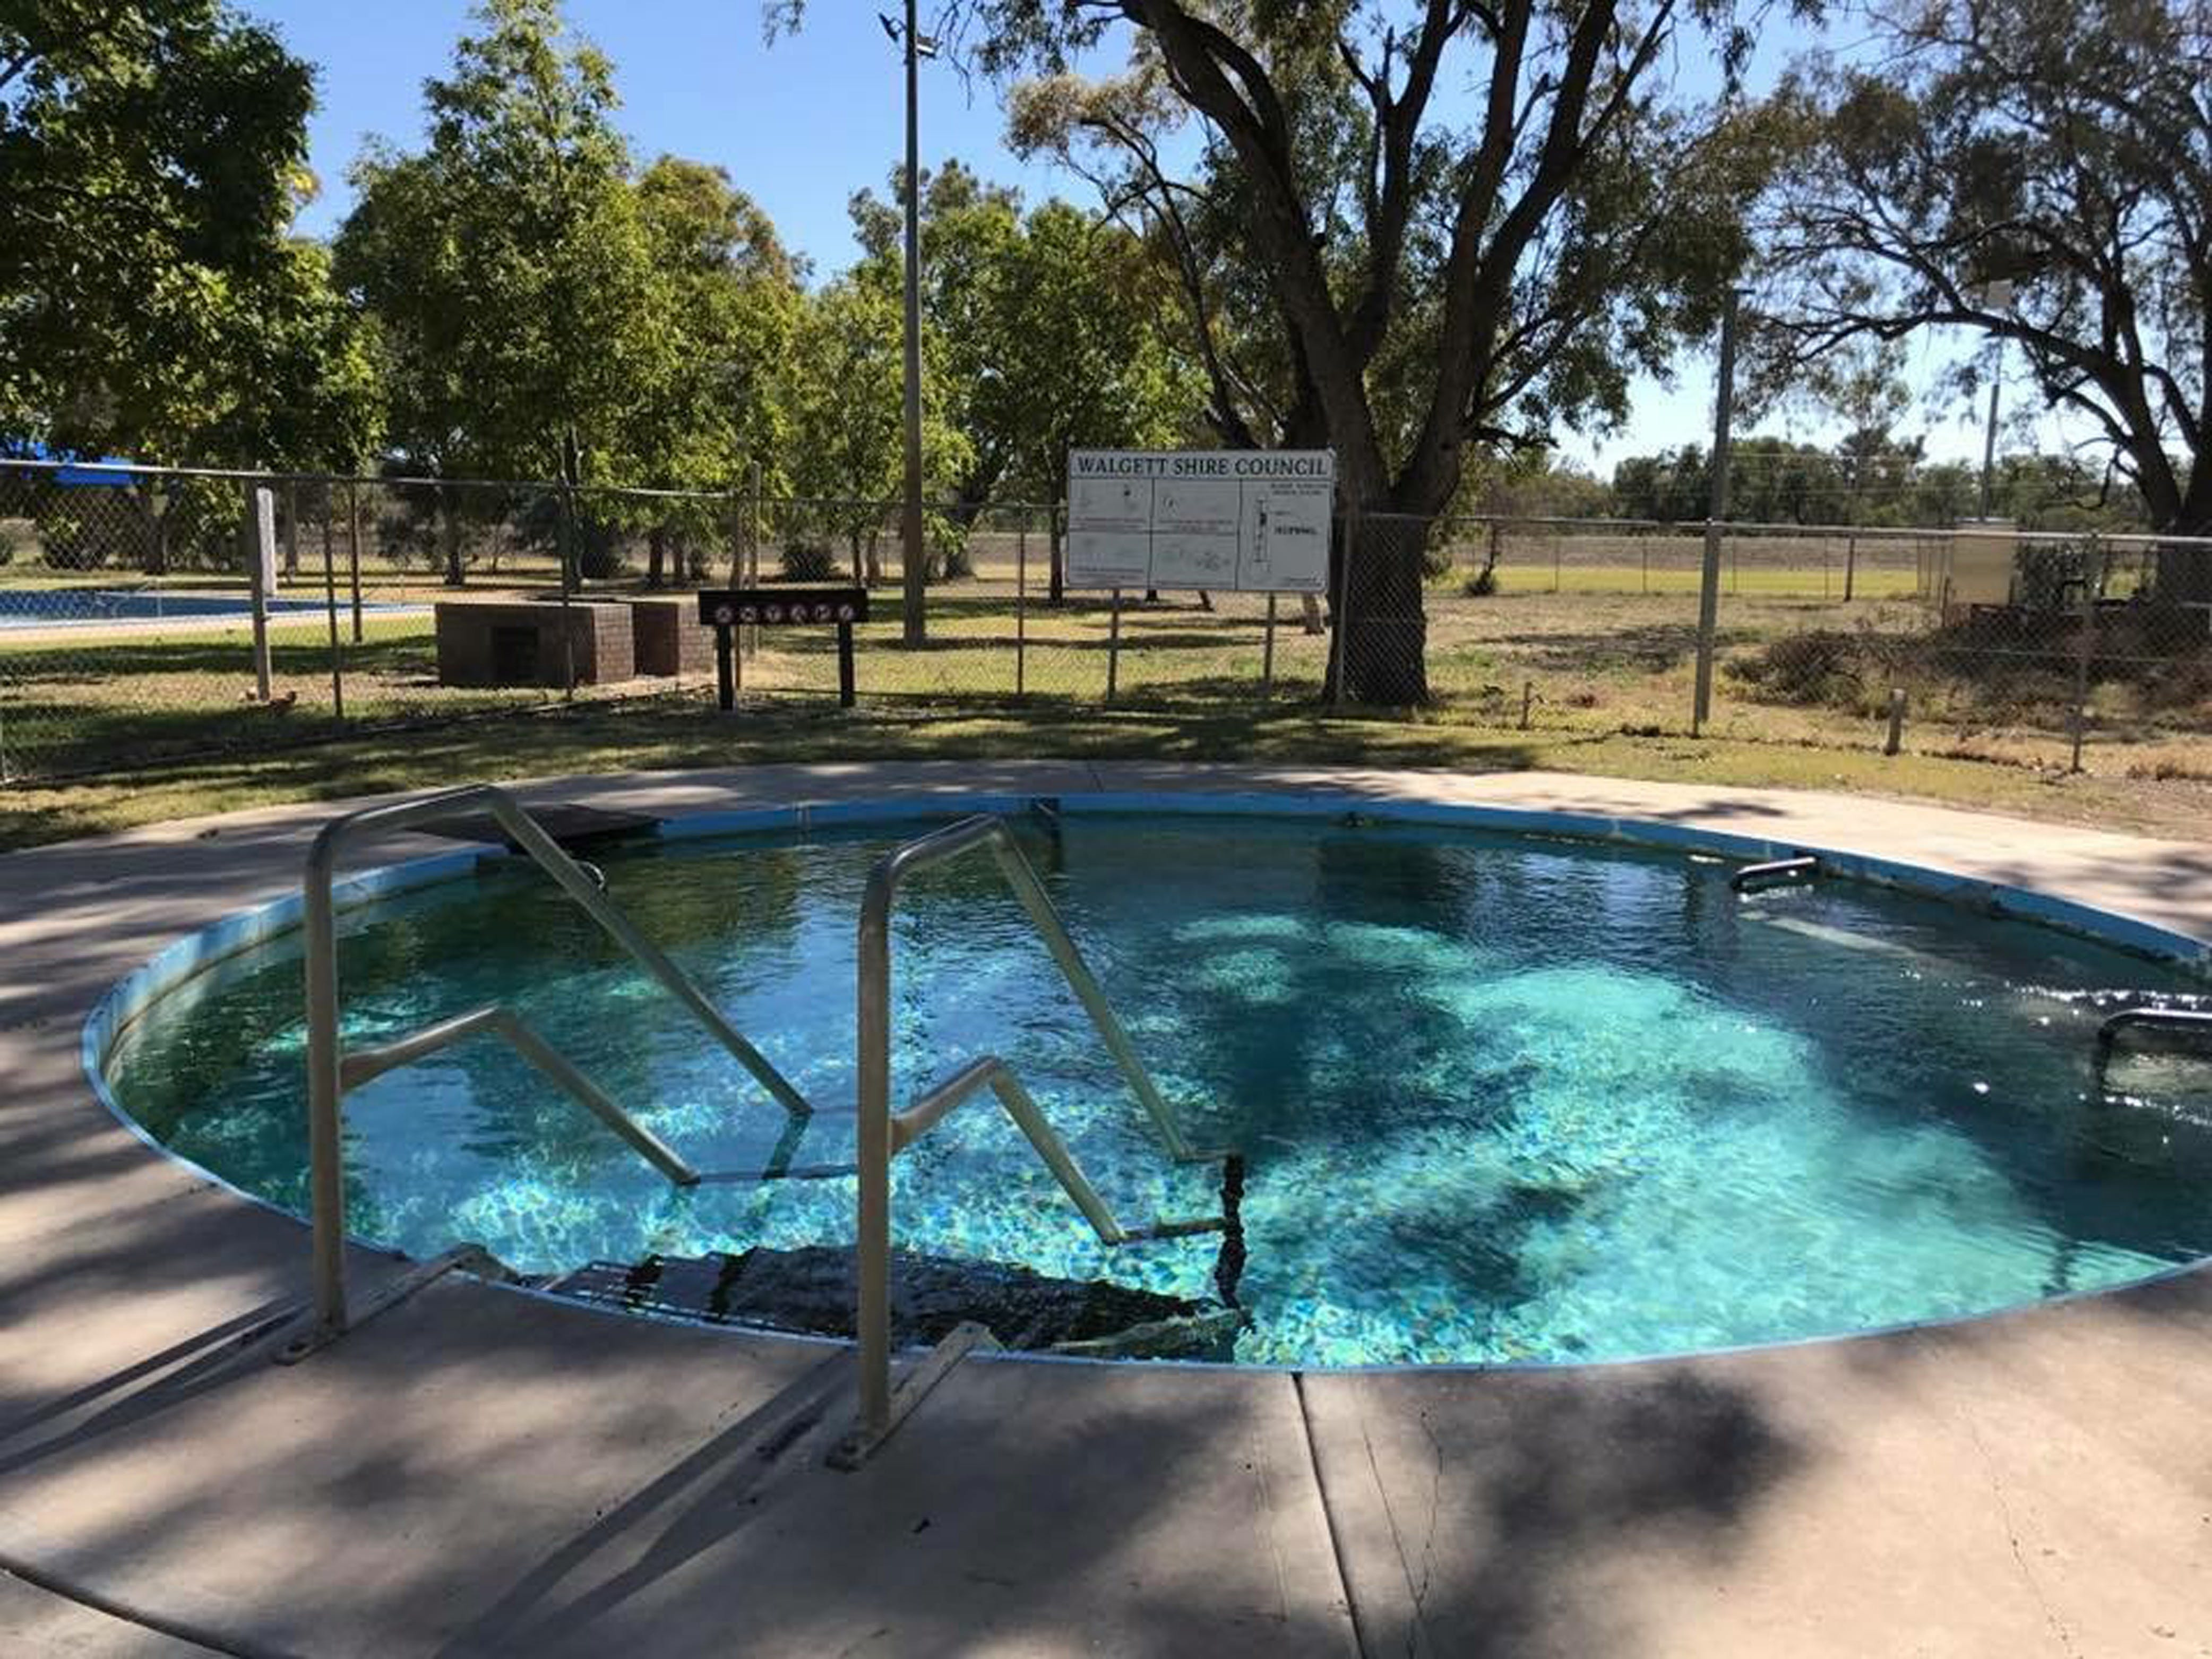 Walgett Artesian Bore Baths - Attractions Sydney